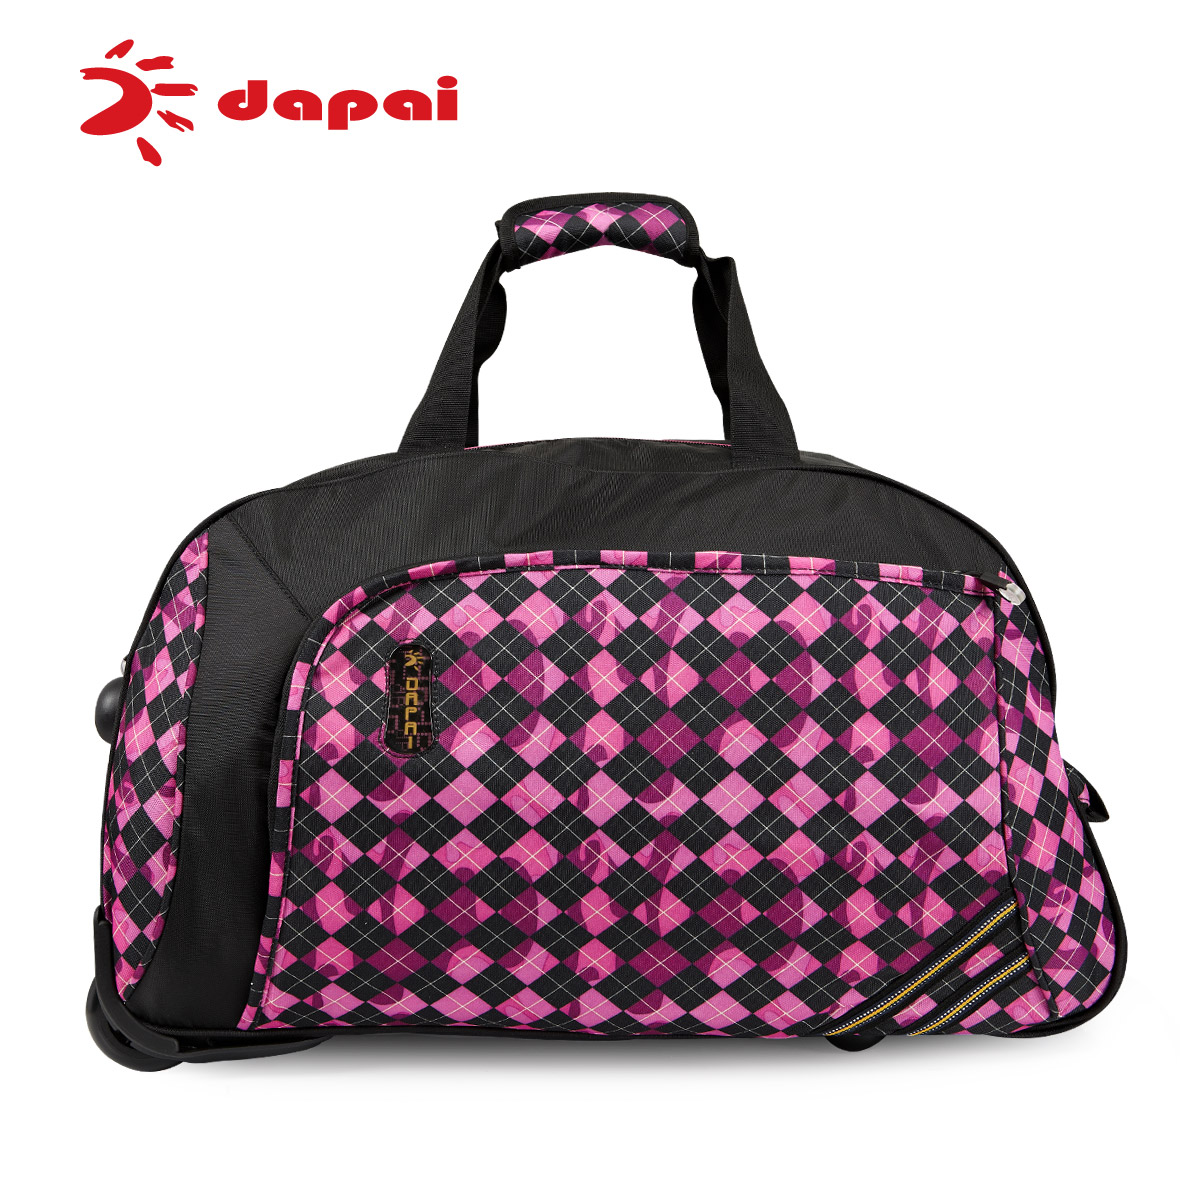 Dapai upscale business travel bag large capacity trolley bag portable fashion for men and women board chassis luggage shipping